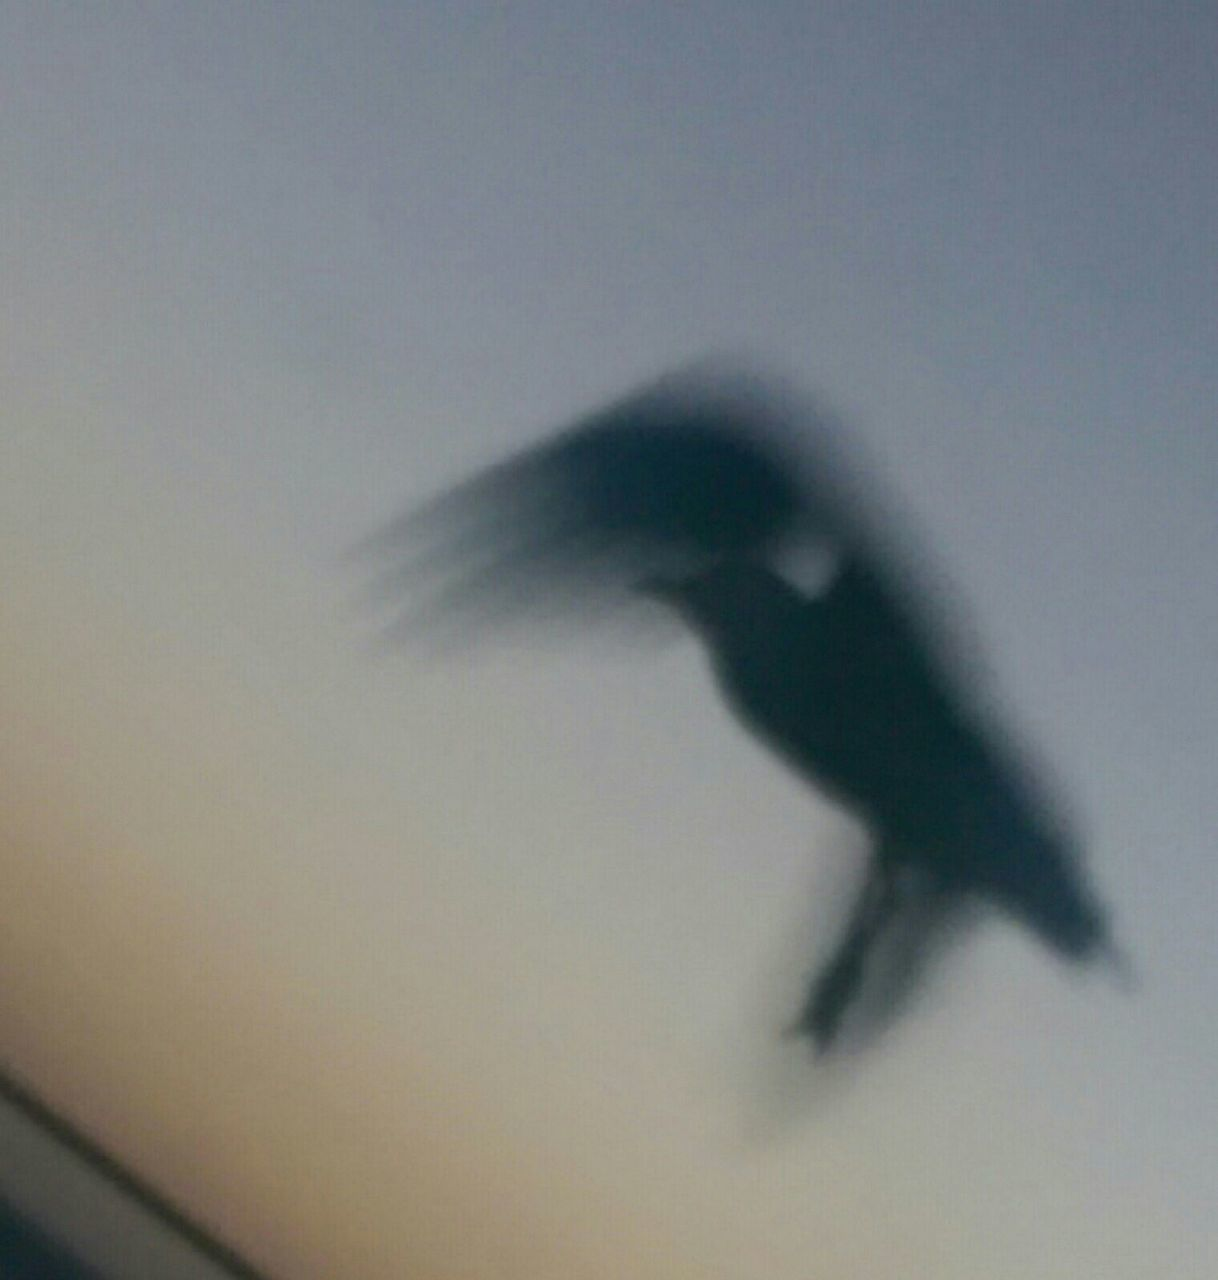 animal themes, one animal, animals in the wild, bird, low angle view, flying, animal wildlife, no people, spread wings, mid-air, shadow, day, outdoors, raven - bird, nature, bat - animal, sky, close-up, bird of prey, mammal